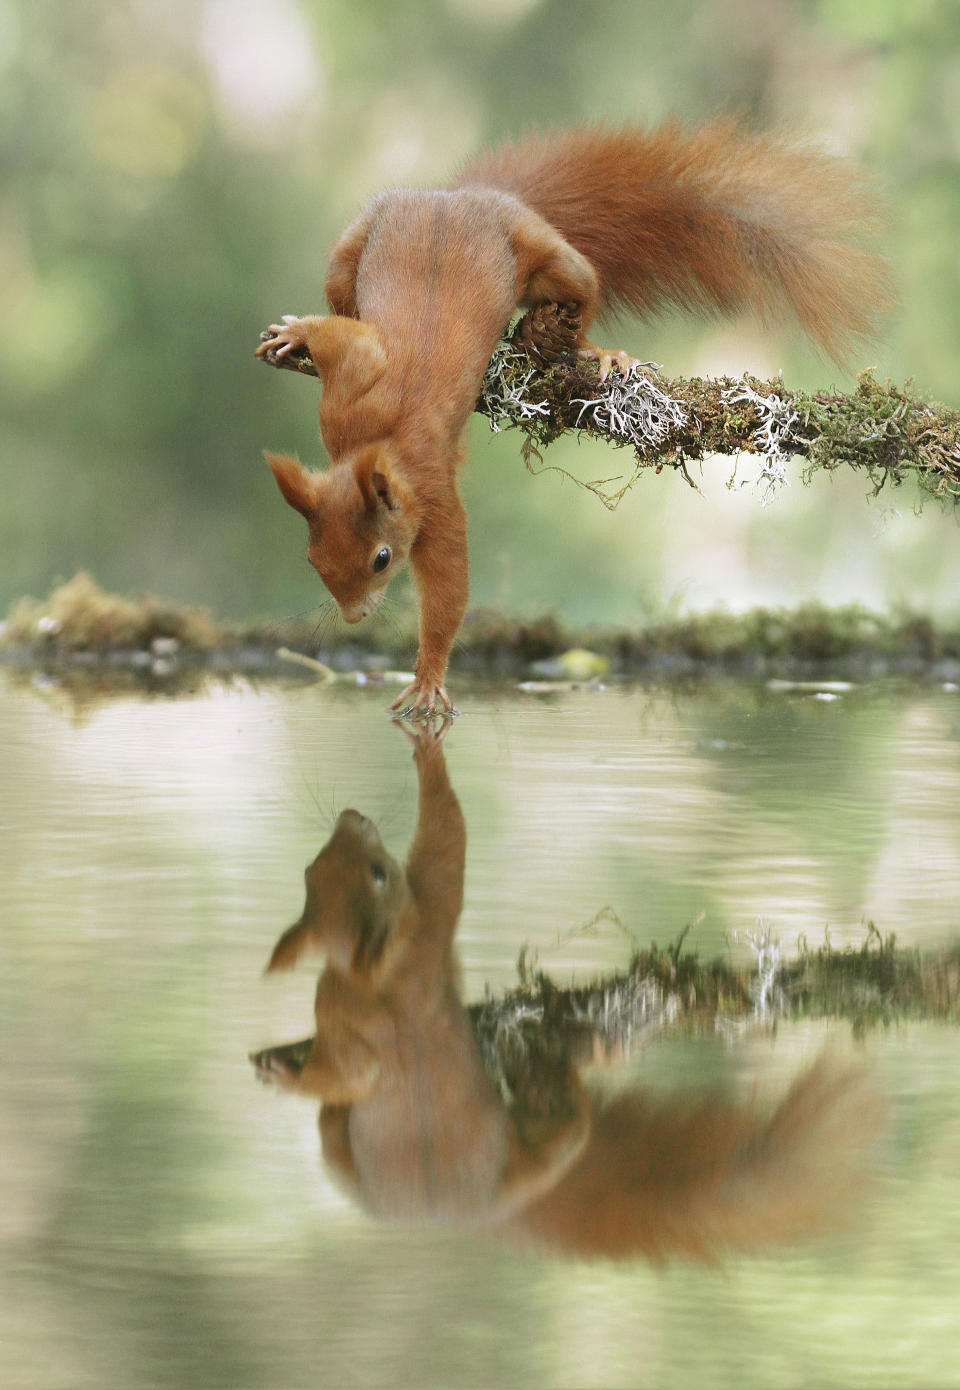 <p>A squirrel looks at its reflection. (Photo: Julian Rad/Caters News) </p>